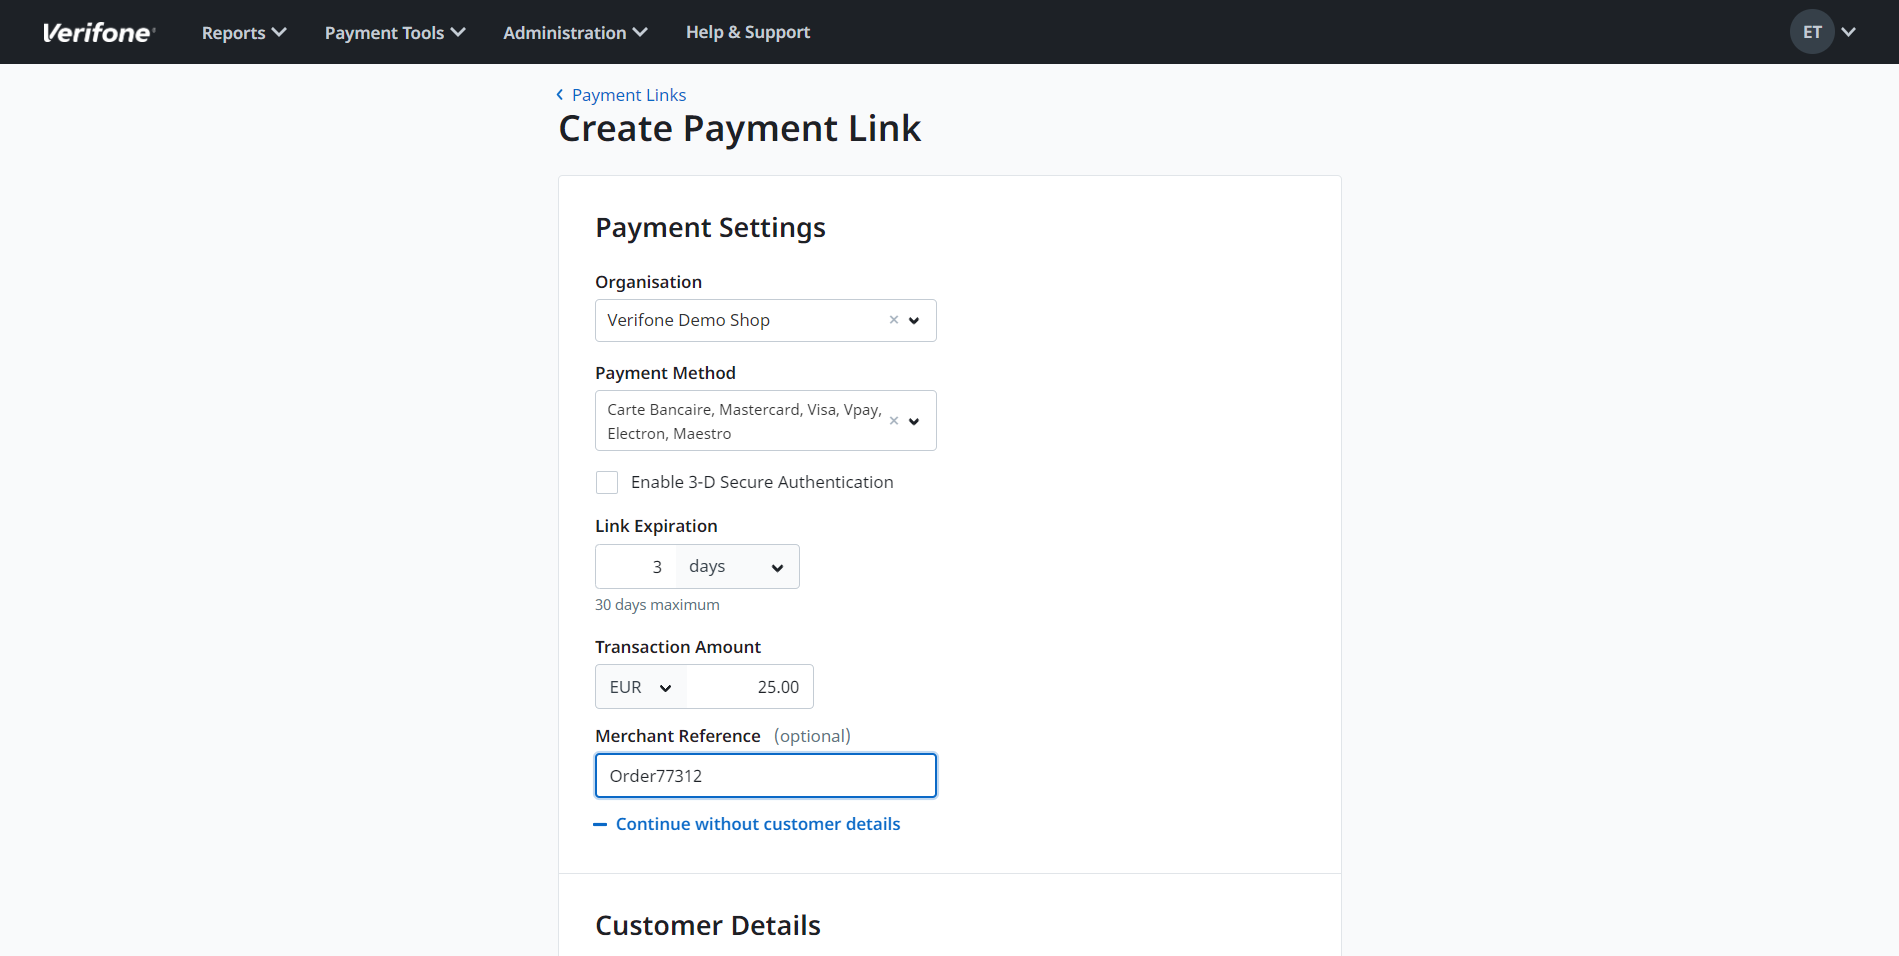 PaybyLink_Payment Settings